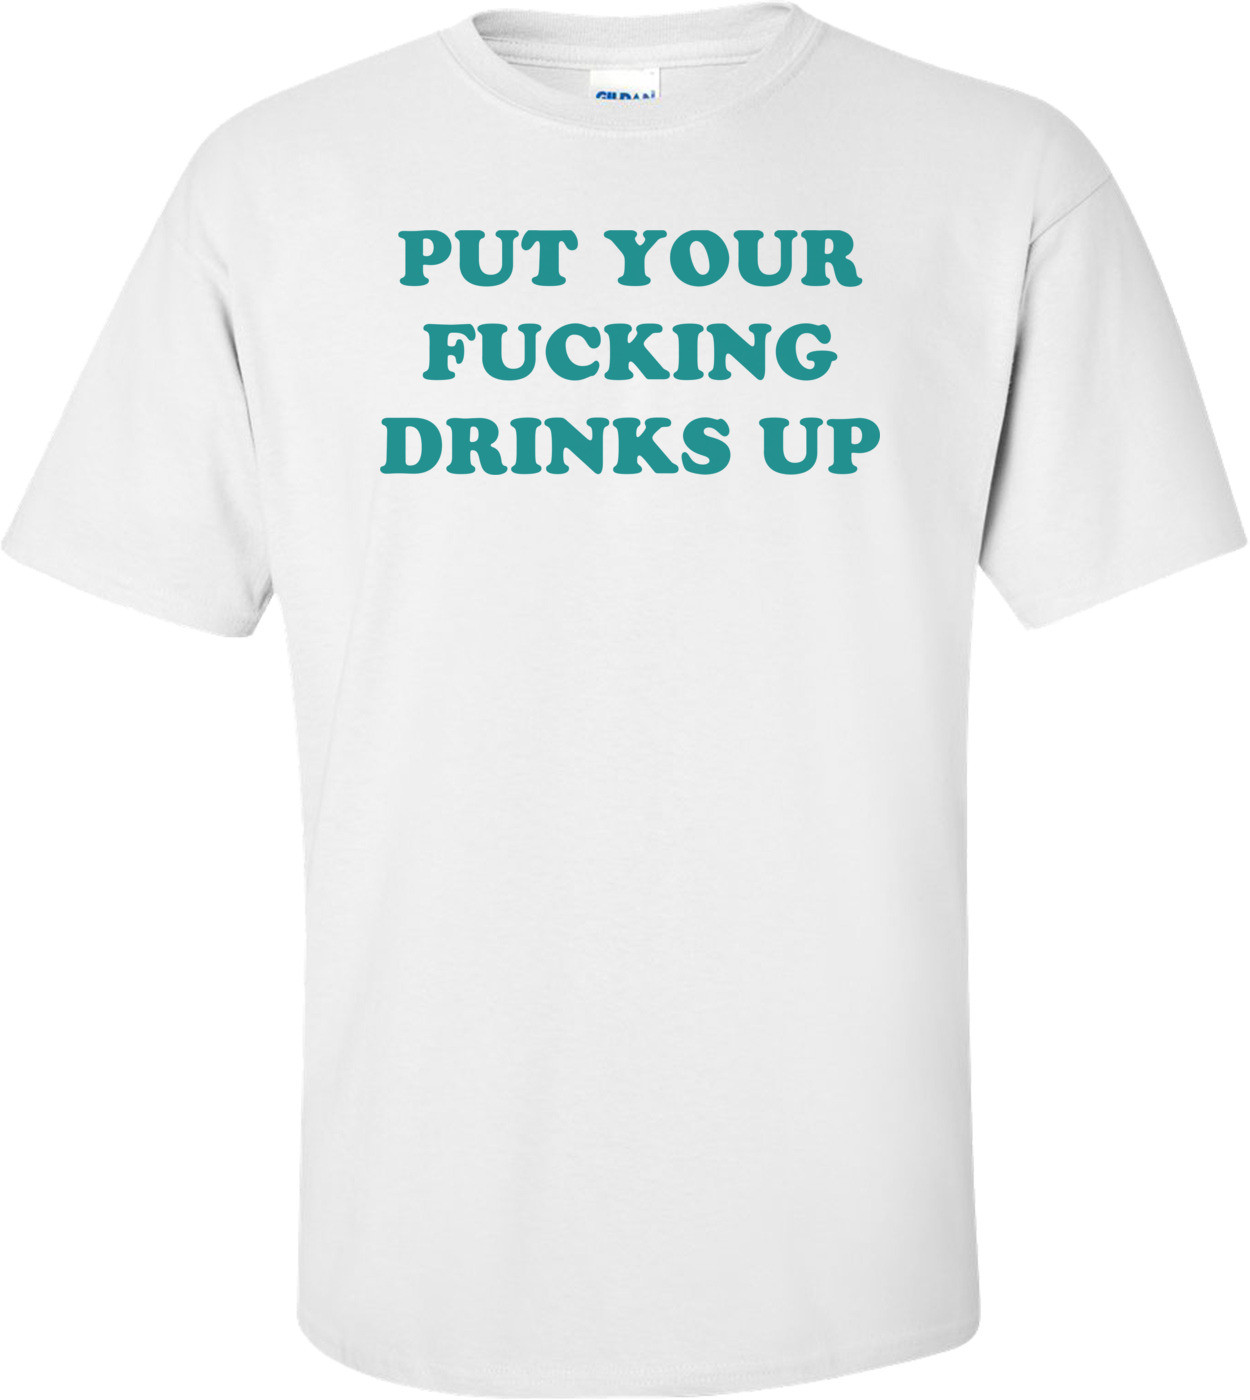 PUT YOUR FUCKING DRINKS UP Shirt